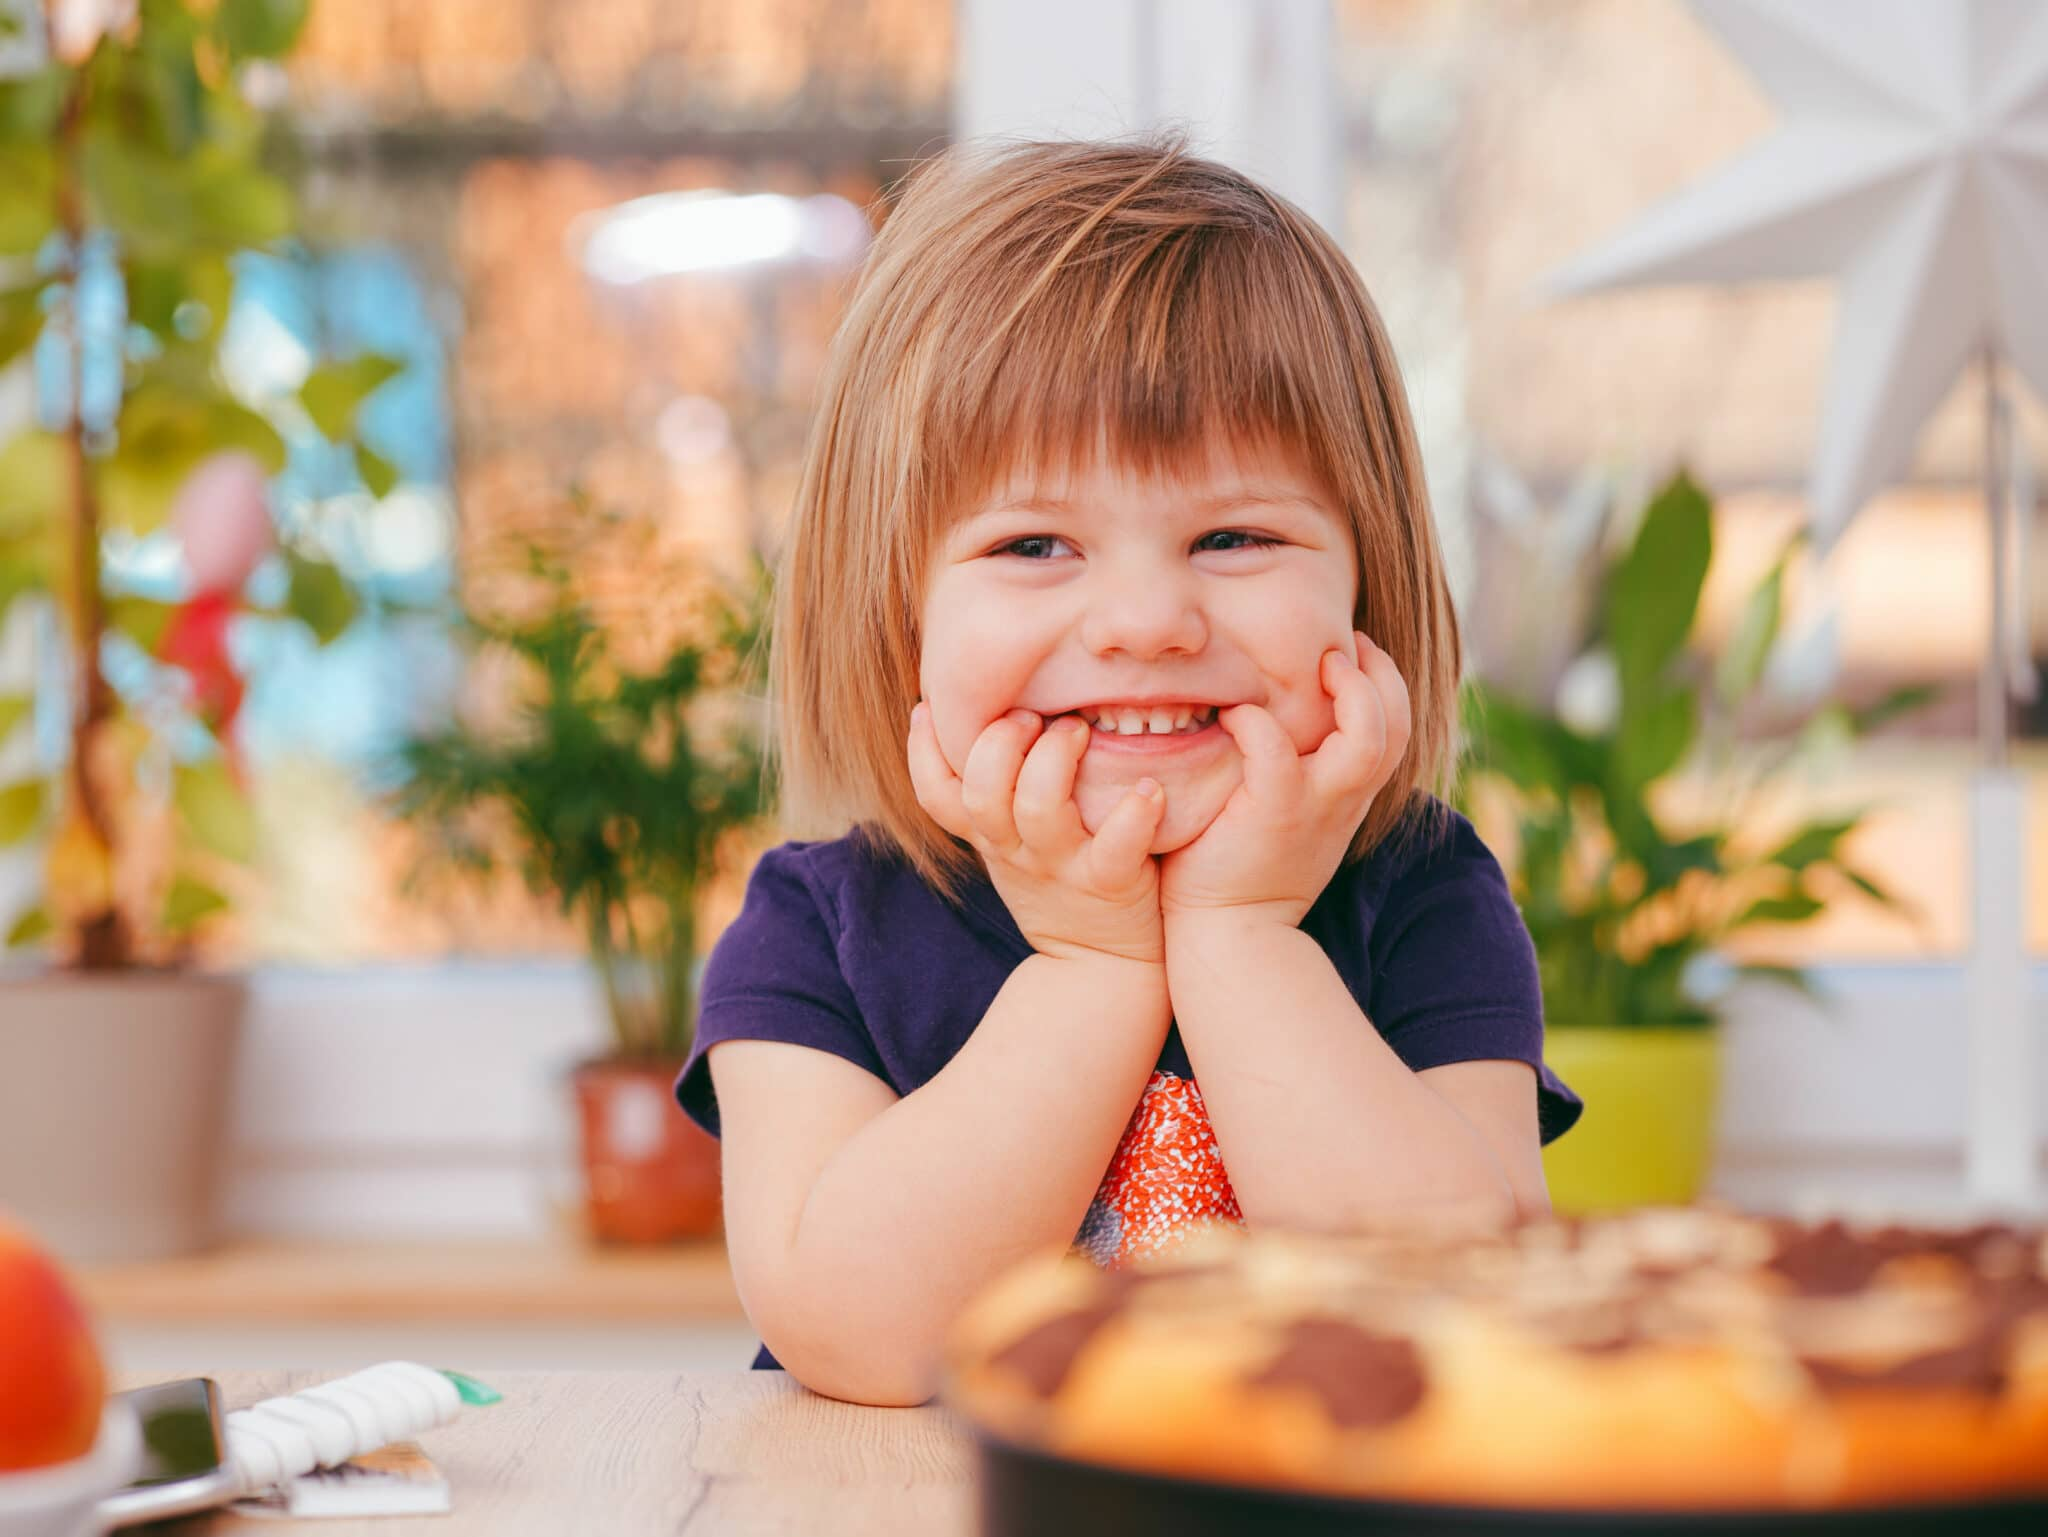 Girl sitting at a table with food